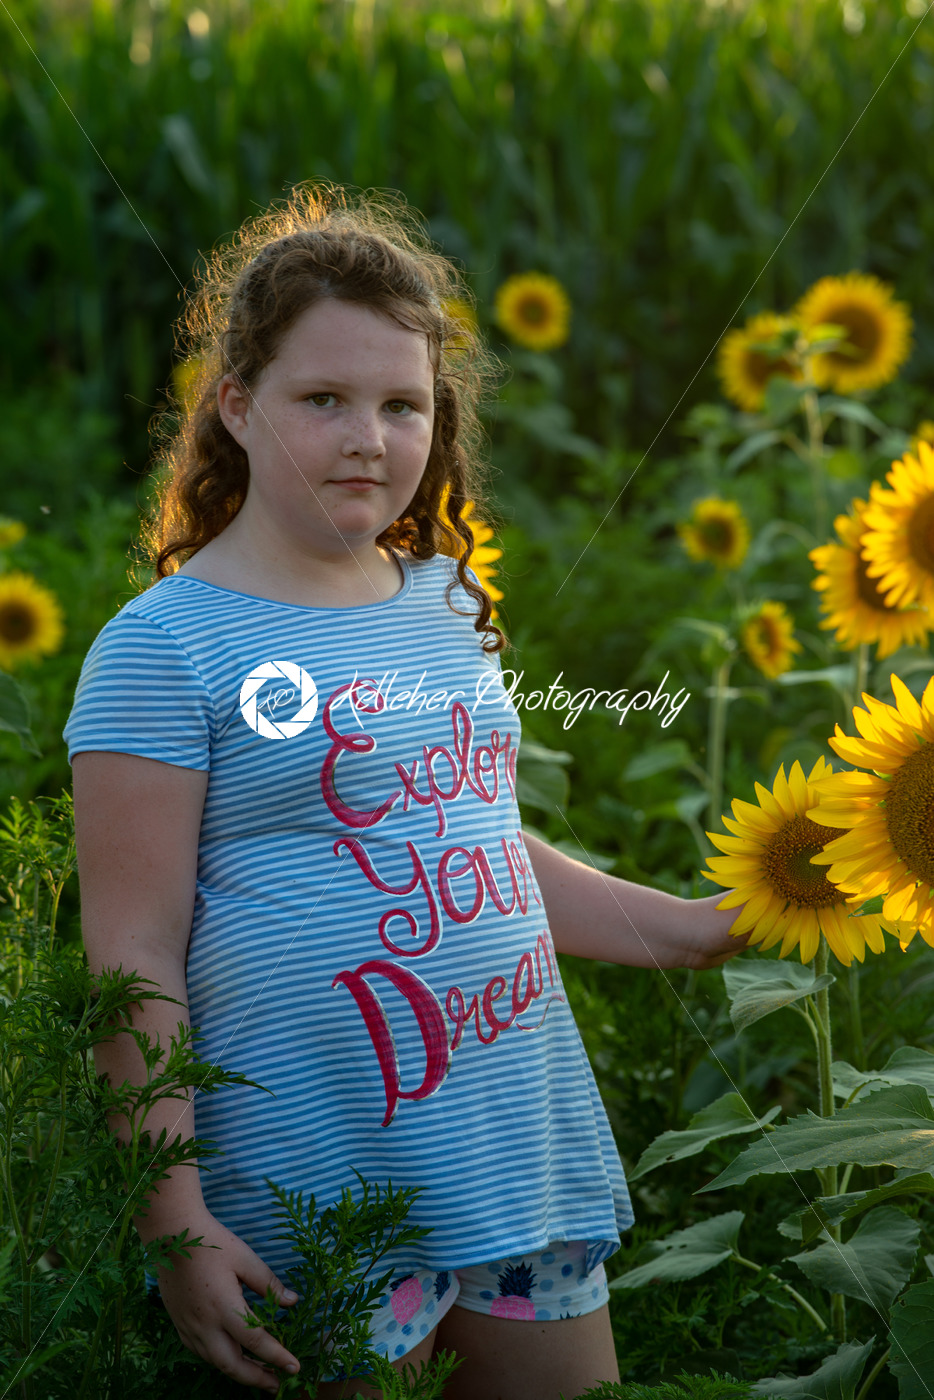 Beauty joyful young girl with sunflower enjoying nature and laughing on summer sunflower field. Sunflare, sunbeams, glow sun. Backlit. - Kelleher Photography Store